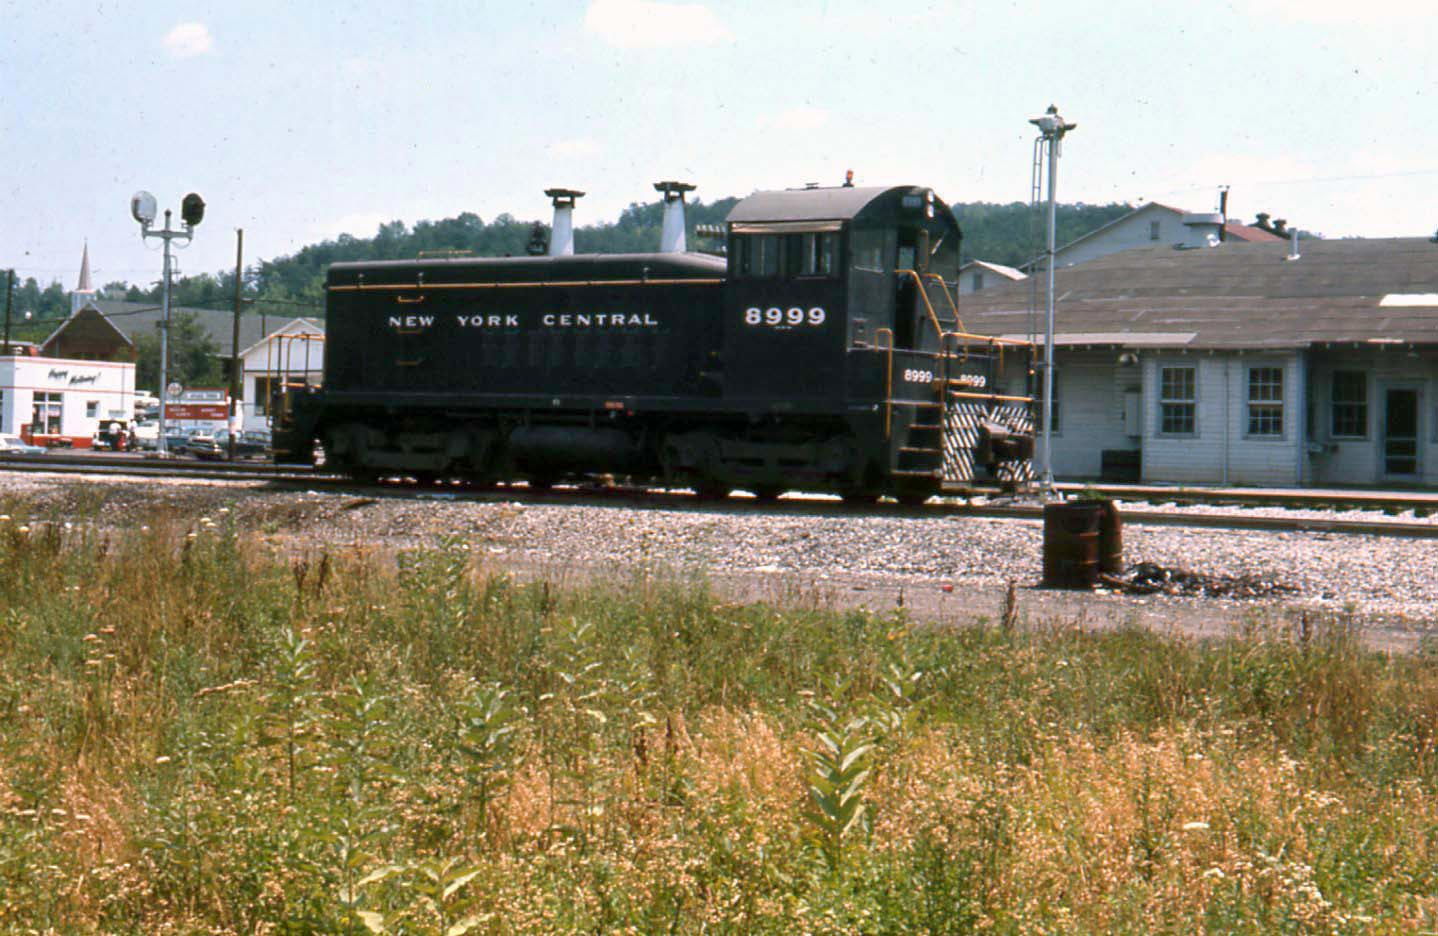 New York Central SW-9 #8999 - Nitro, West Virginia - 1966